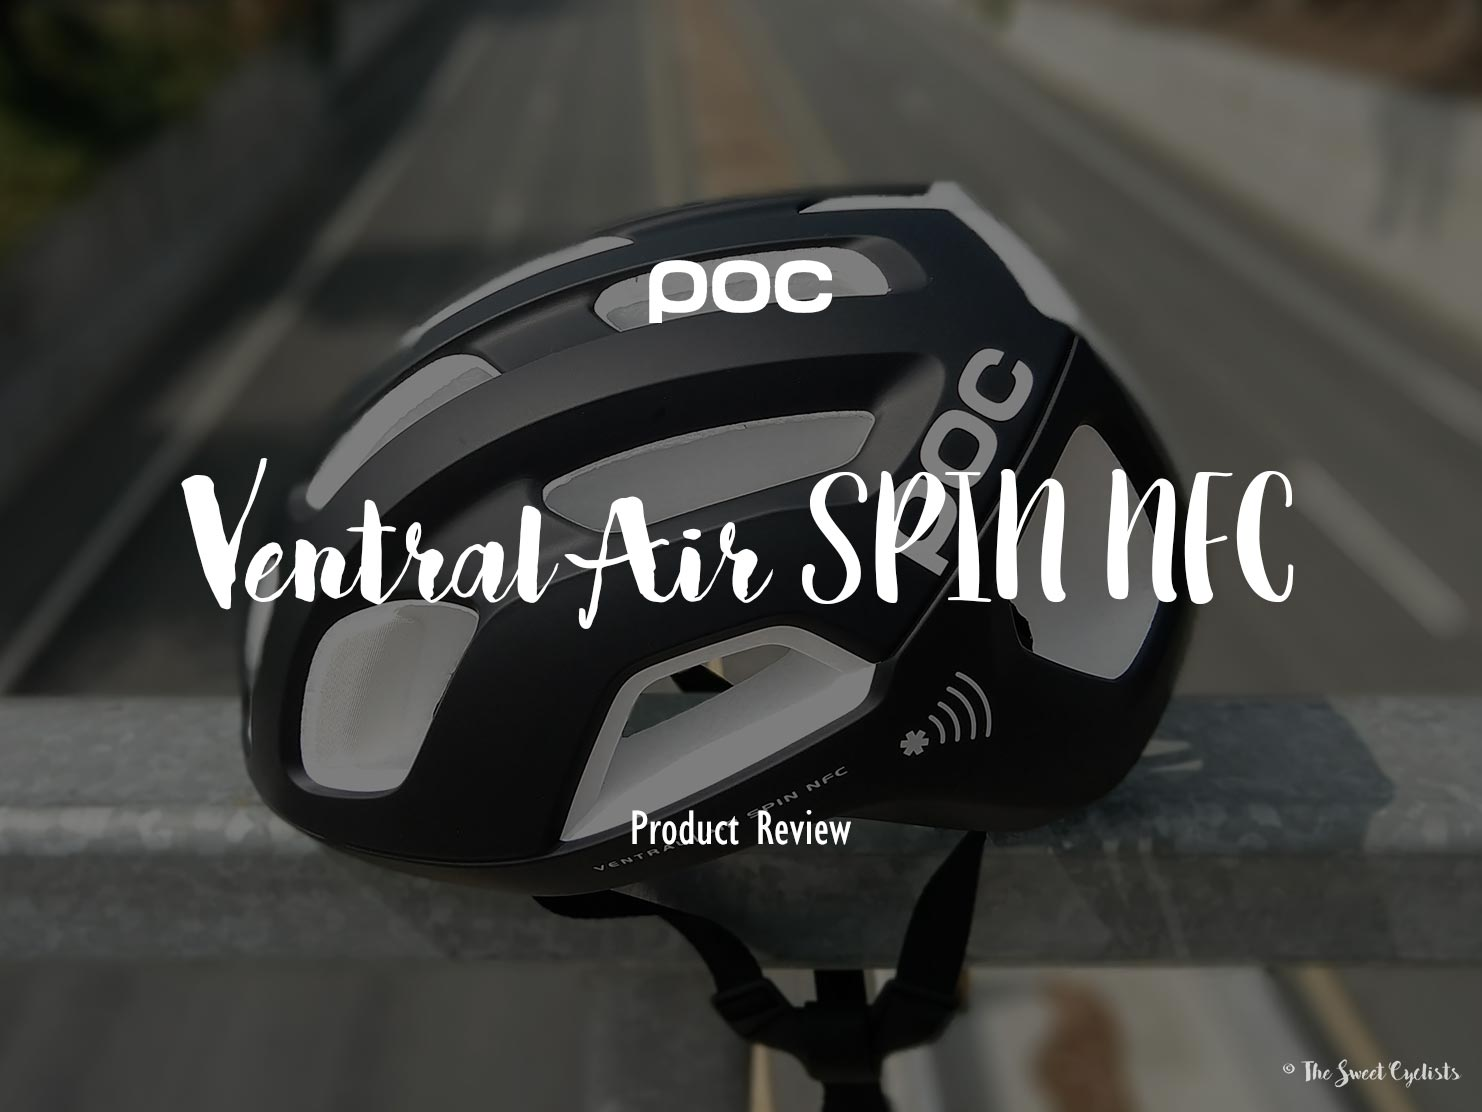 The NFC equipped bicycle helmet